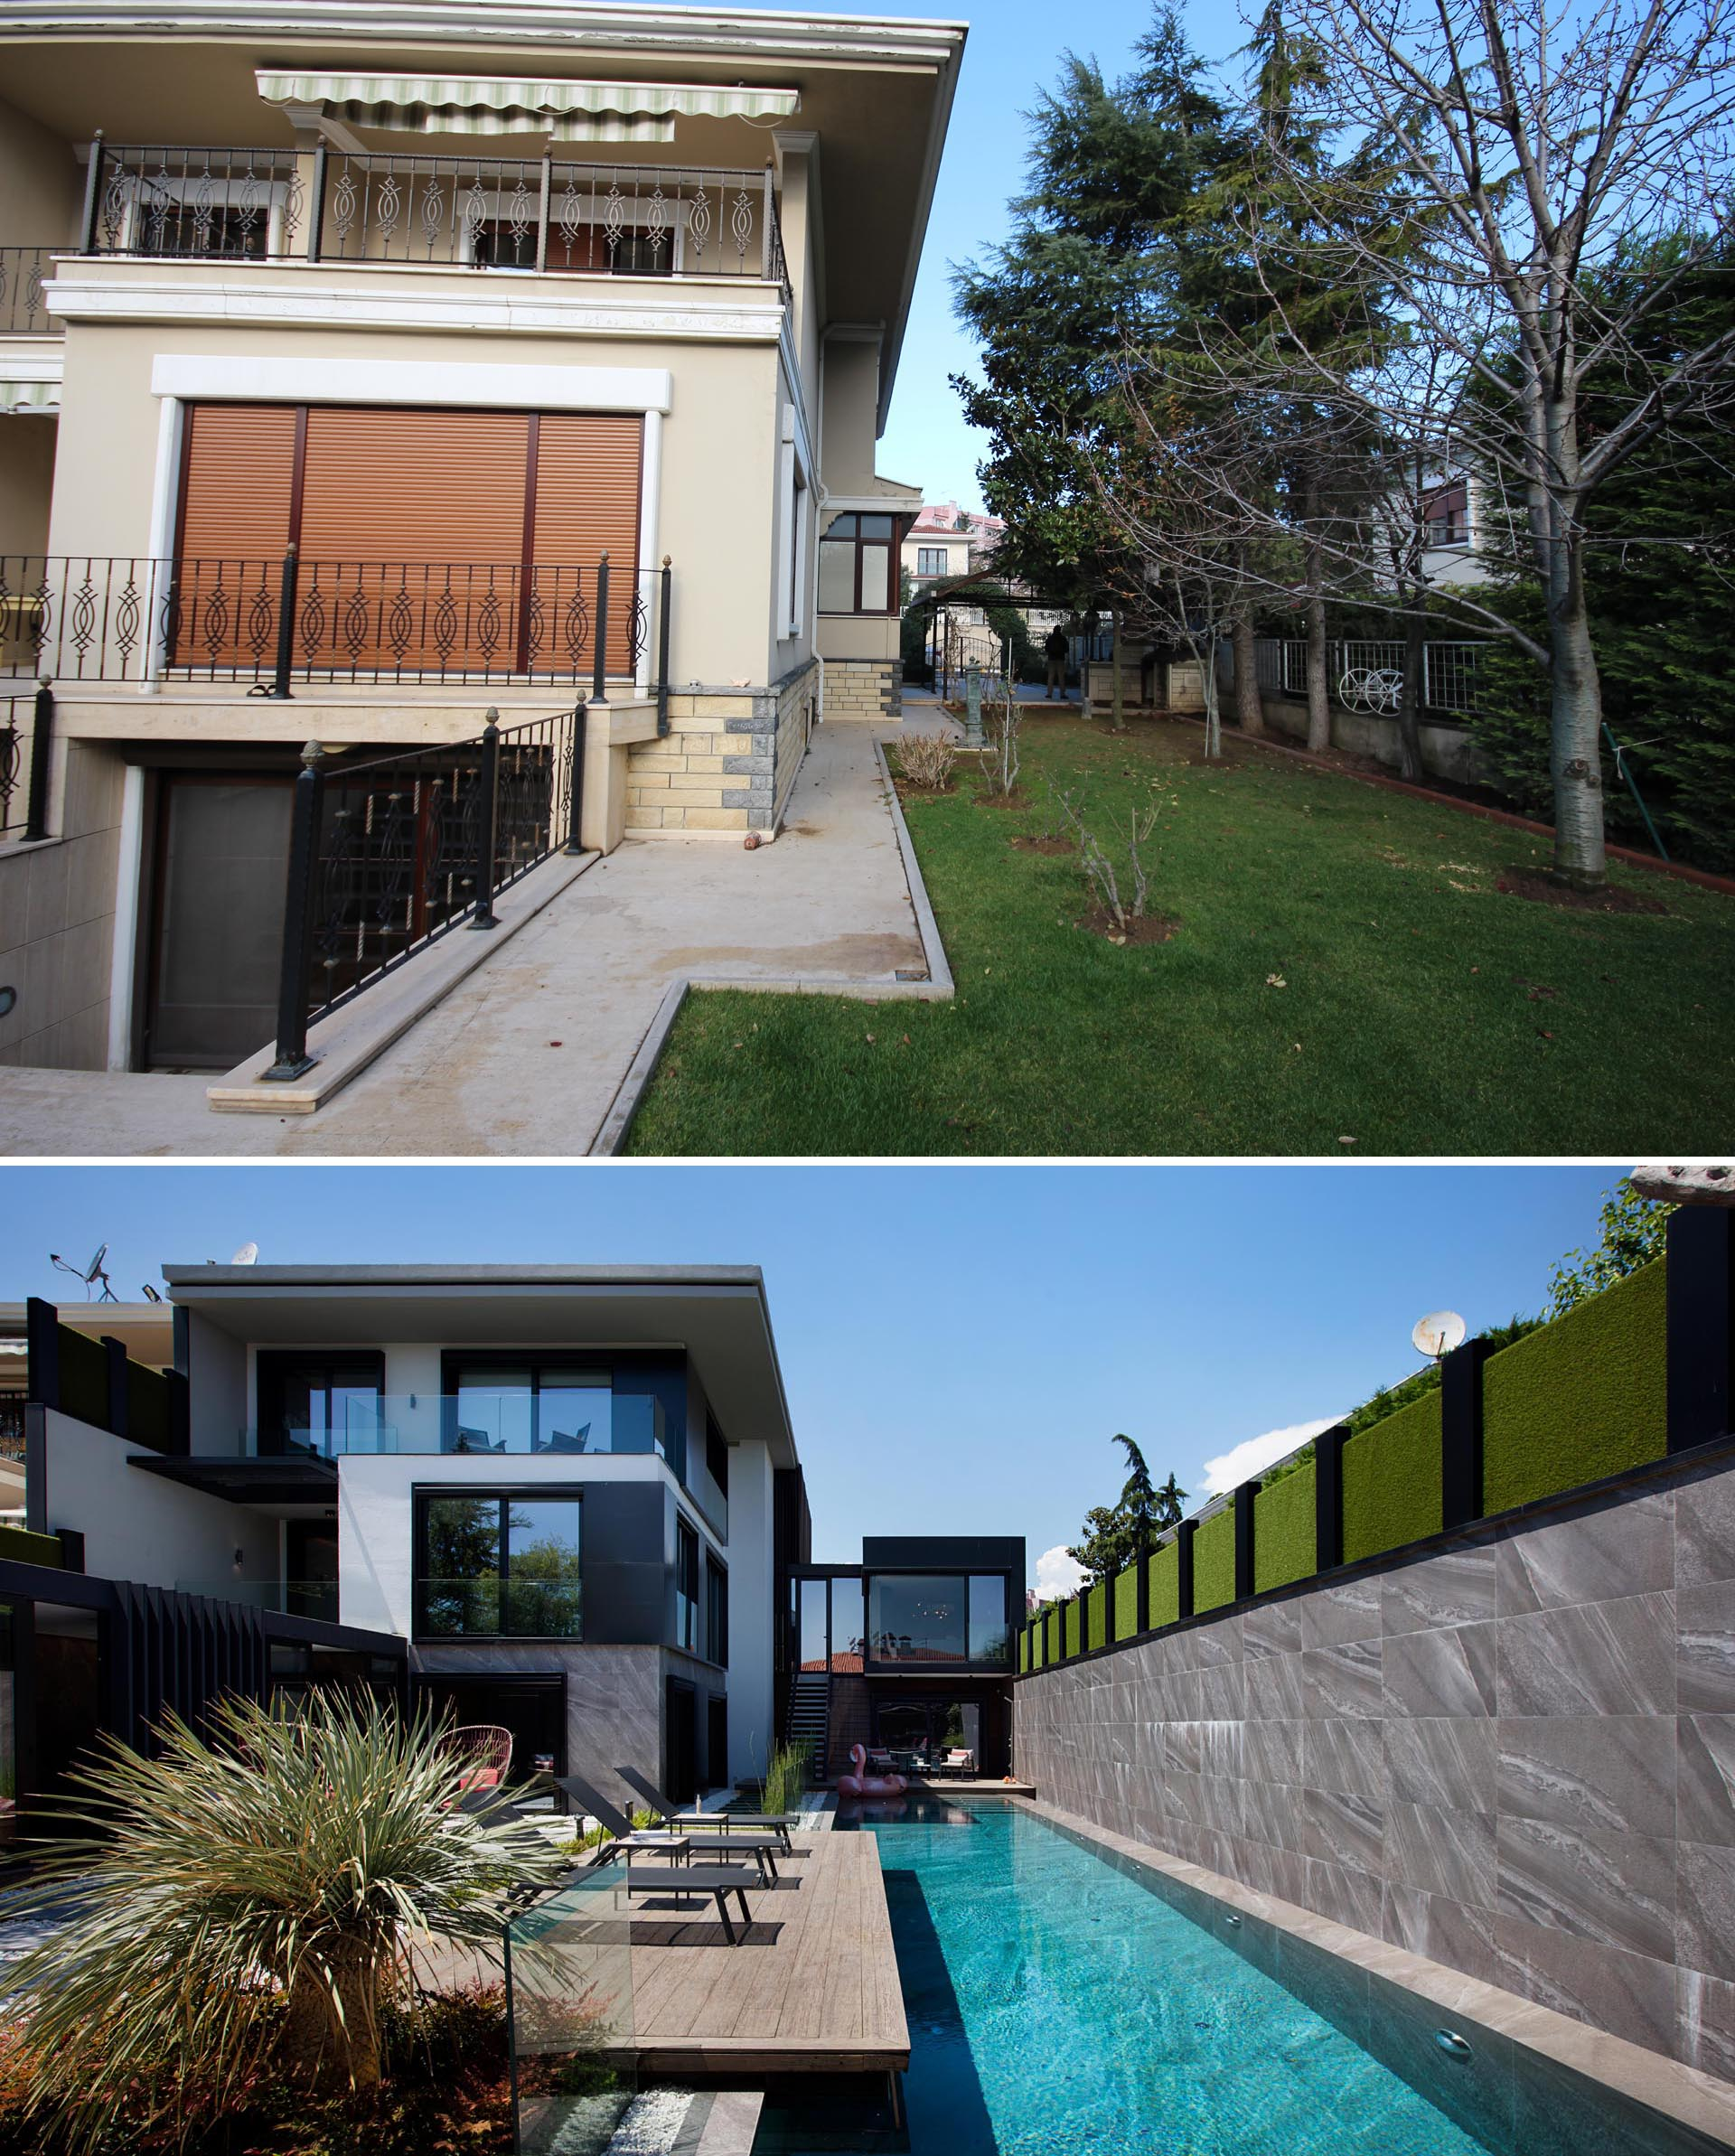 A house and yard renovation includes a new side path and swimming pool.